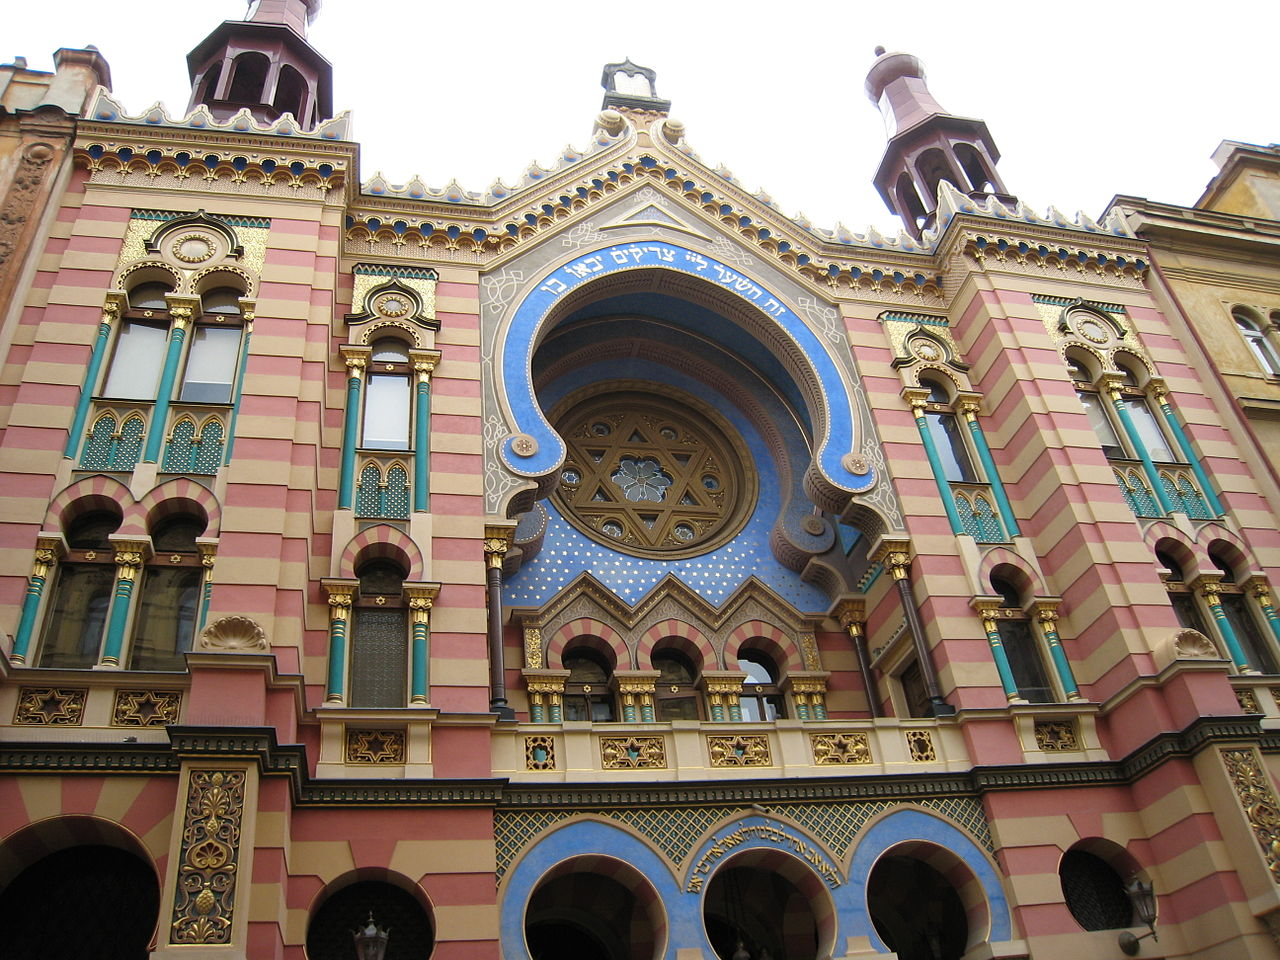 http://upload.wikimedia.org/wikipedia/commons/thumb/8/82/Jubilee_Synagogue_196.jpg/1280px-Jubilee_Synagogue_196.jpg